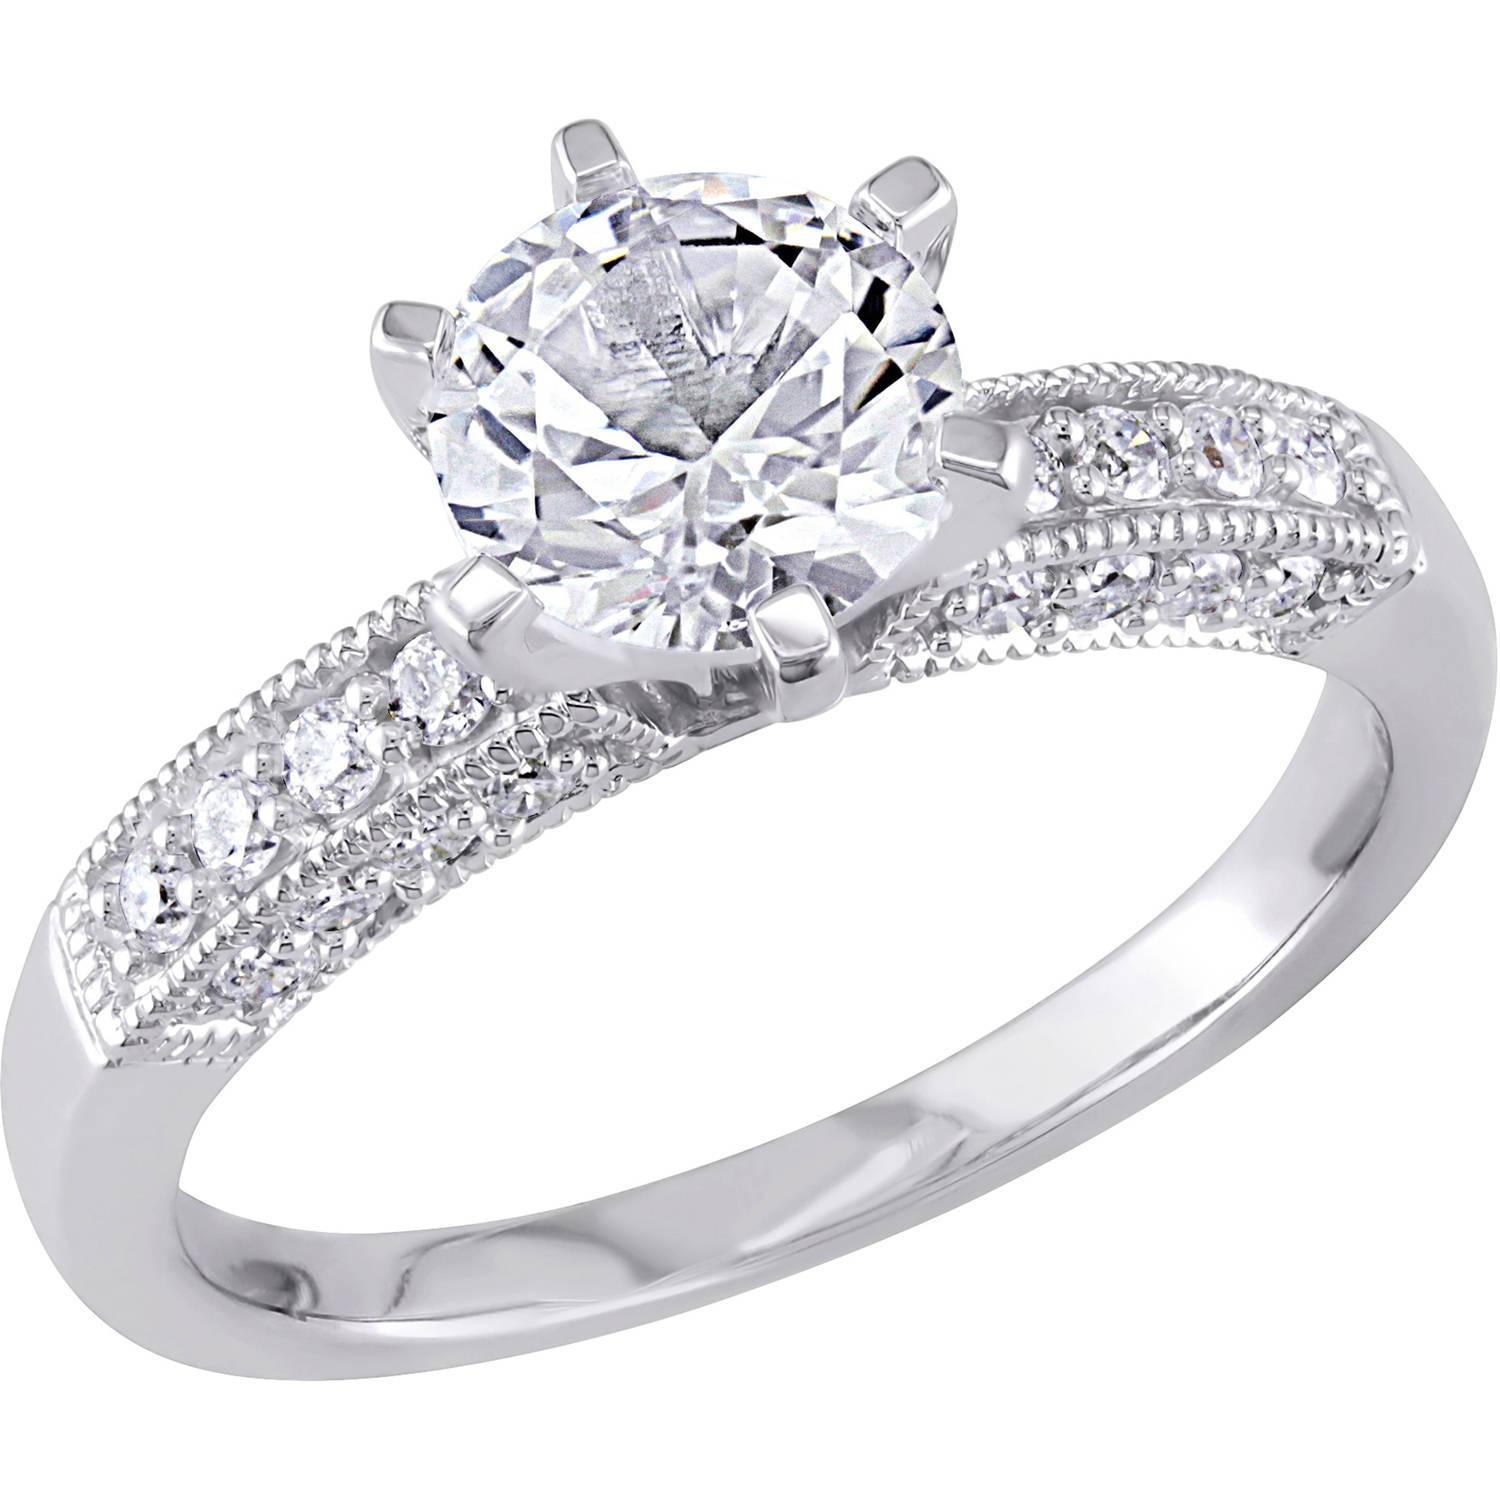 Wedding Rings : 4 Carat Rings Bridal Sets Under 500 4 Carat Inside Engagement Rings For Women Under (View 8 of 15)